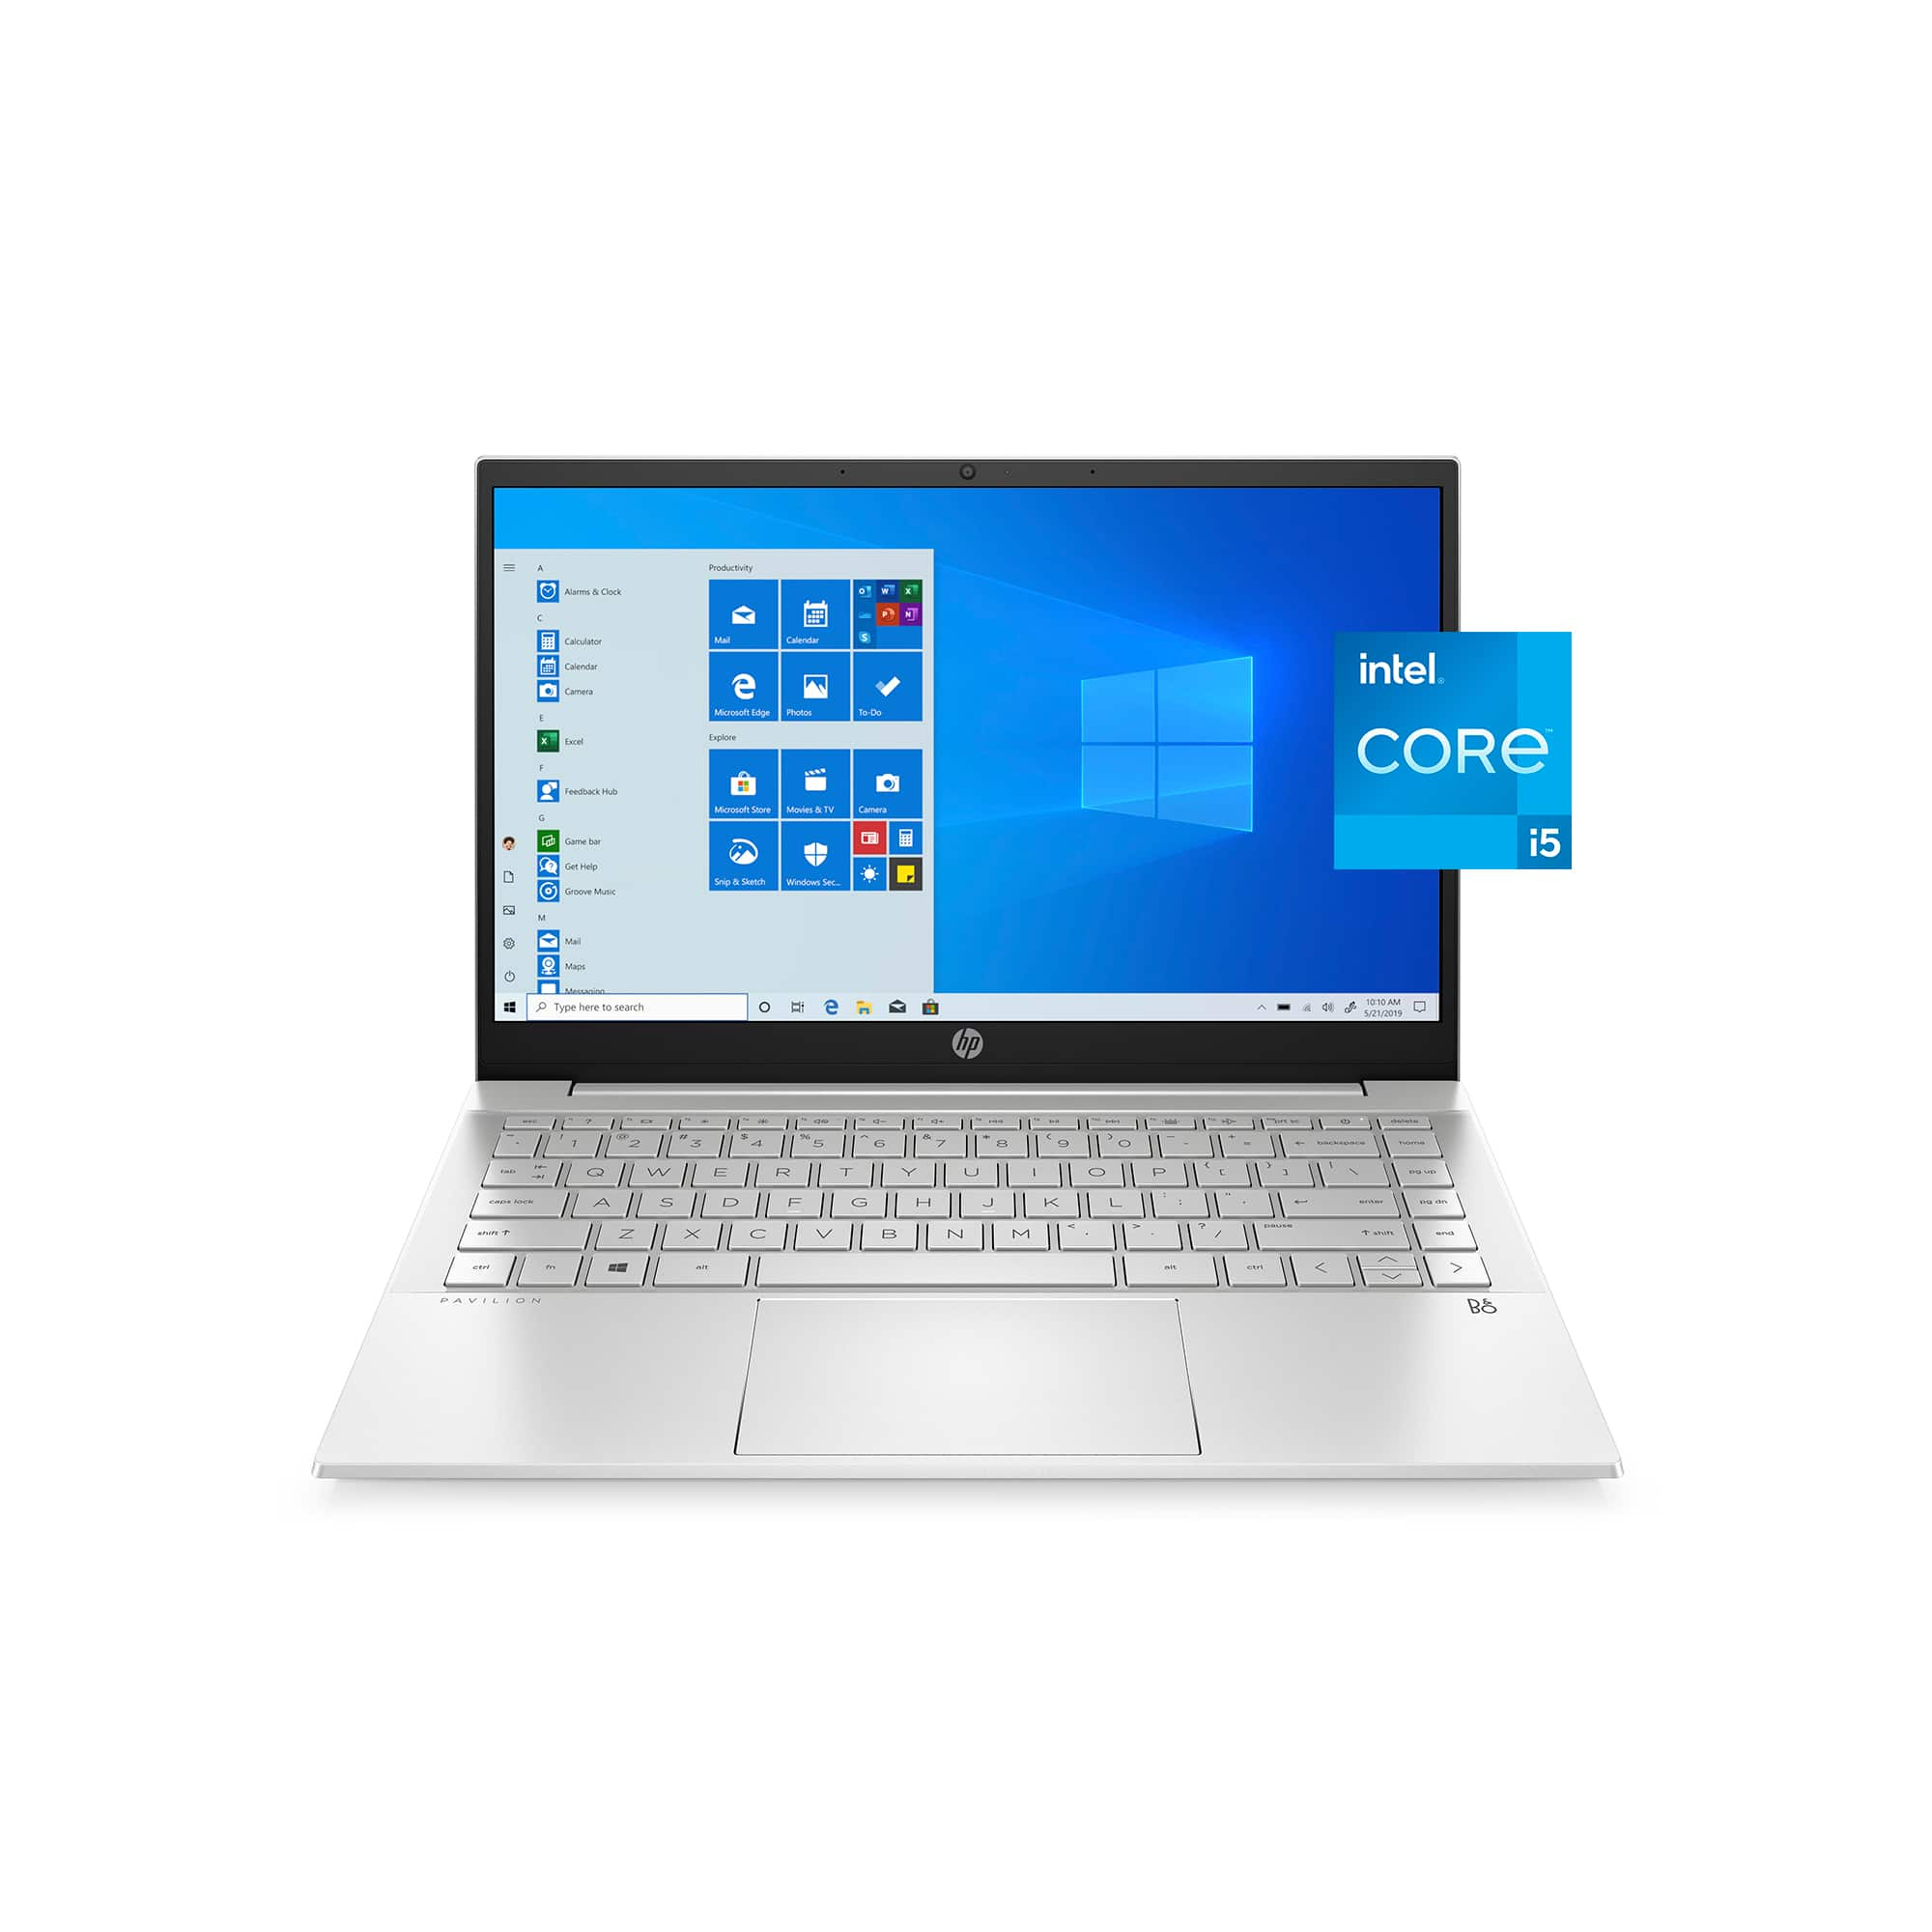 "HP Pavilion Laptop: Intel Core i5-1135G7, 14"" 1080p IPS, 8GB DDR4, 256GB SSD $549 + Free Shipping @ Walmart"